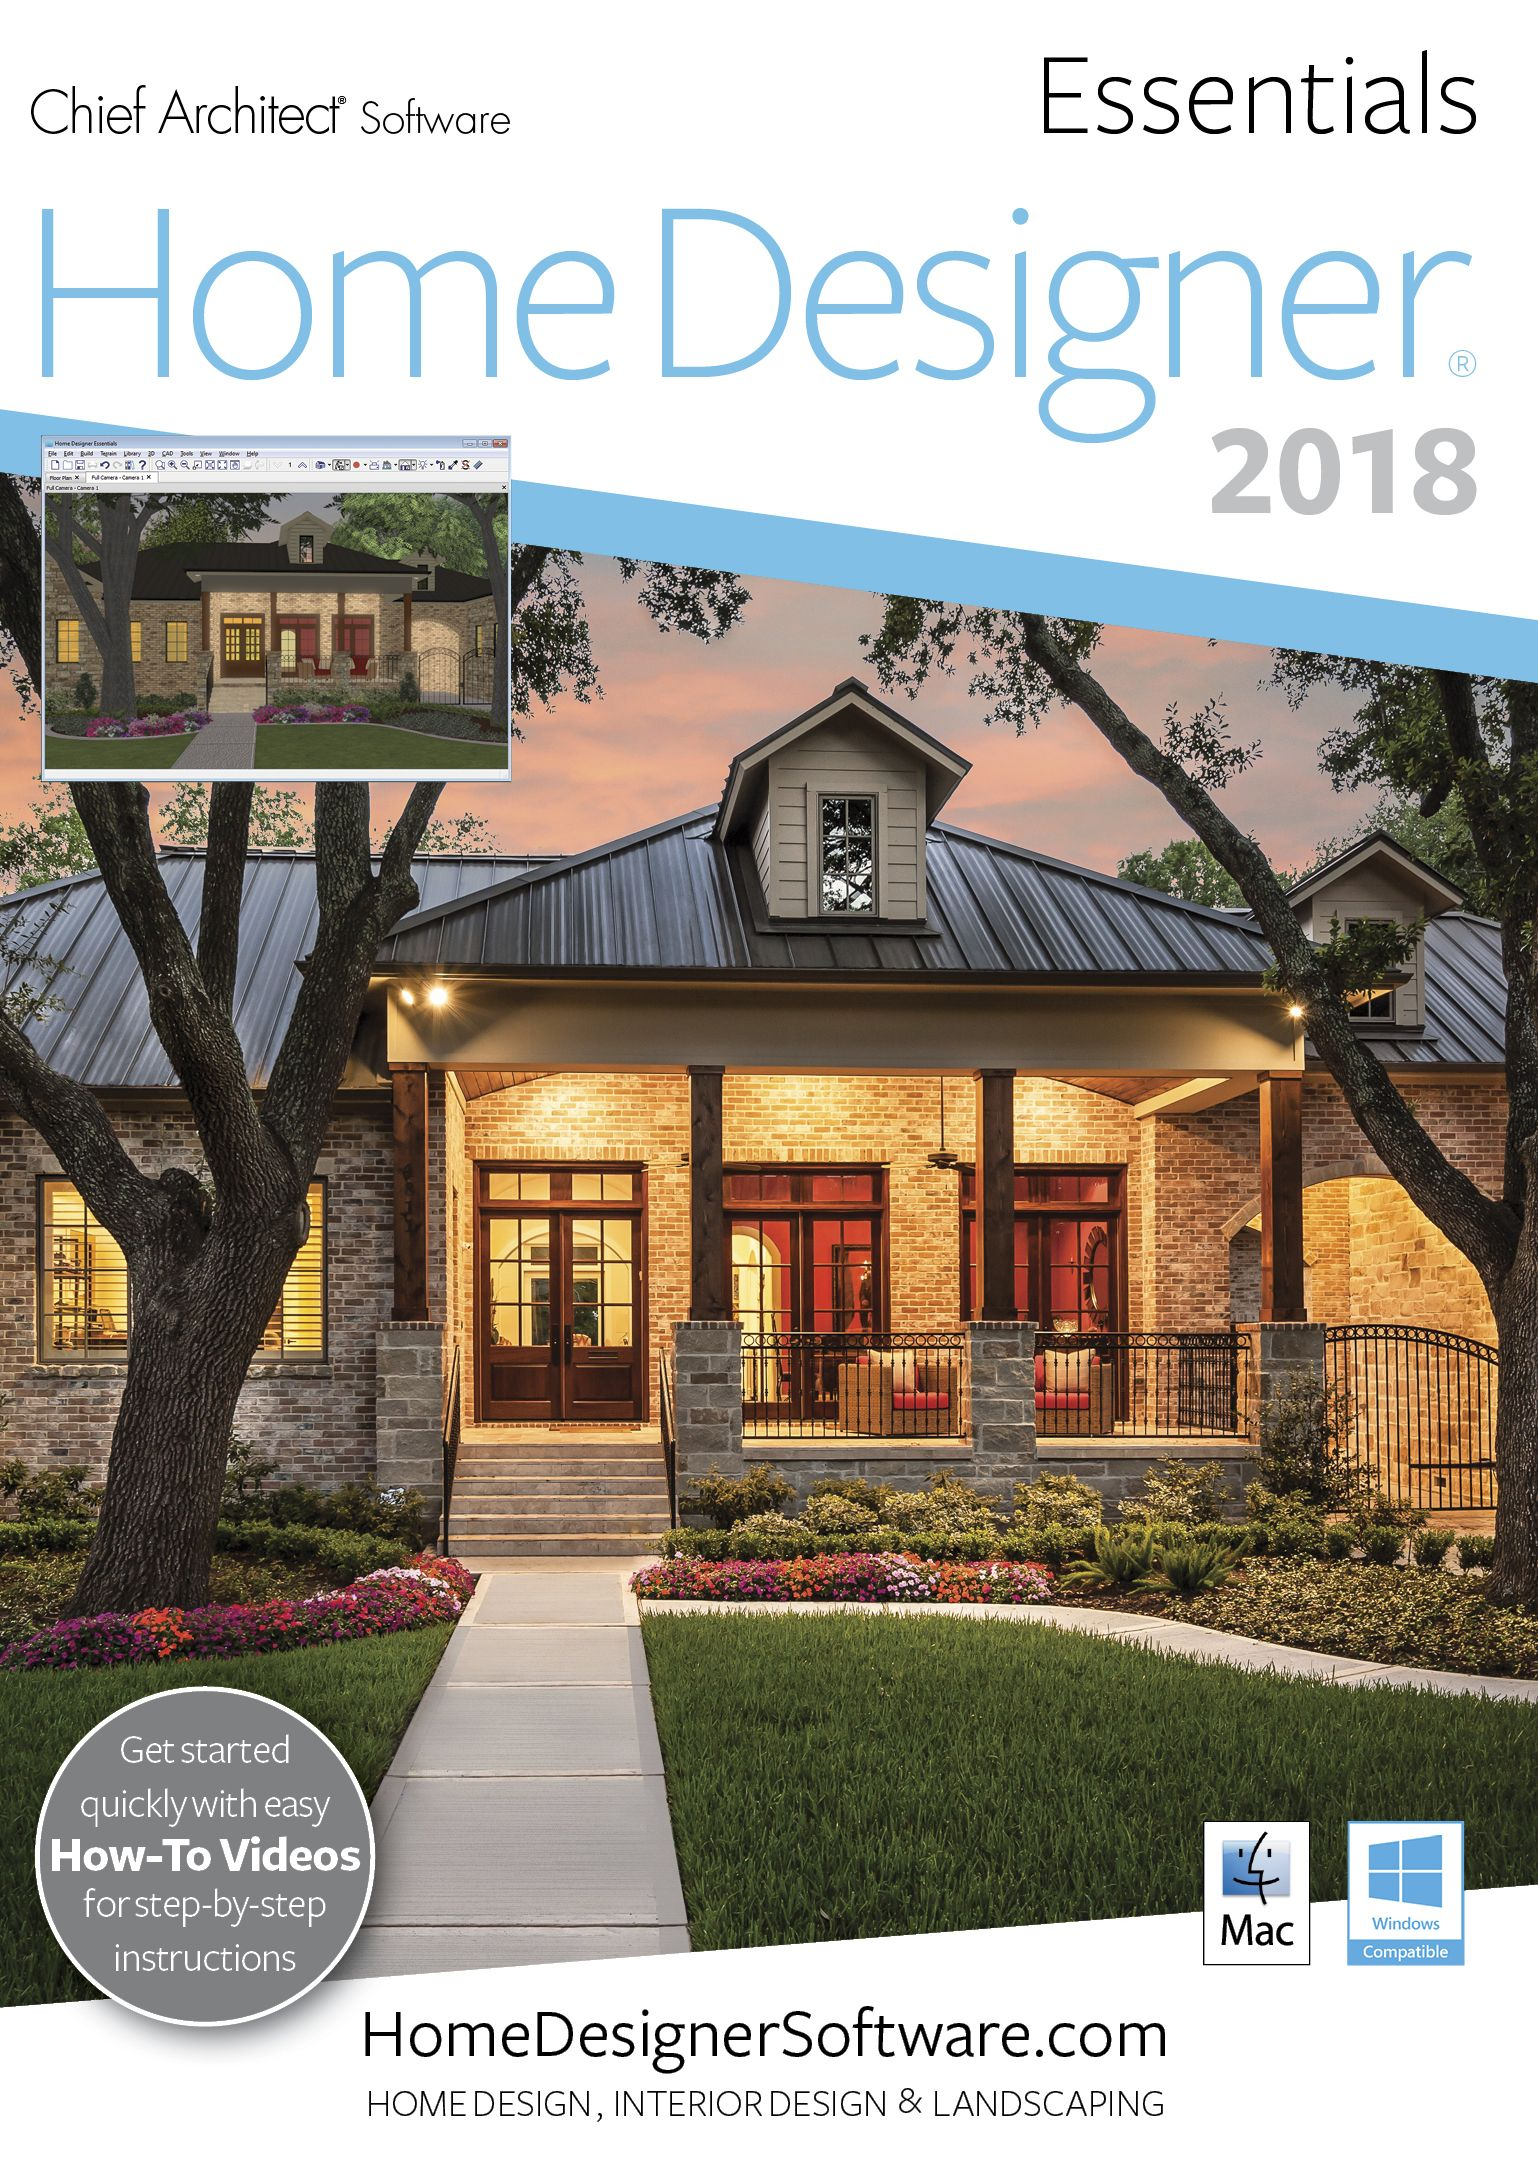 Amazing Home Designer(r) Software Part - 12: Home Designer Essentials 2018 Mac Download Download U003eu003eu003e You Can Find Out  More Details